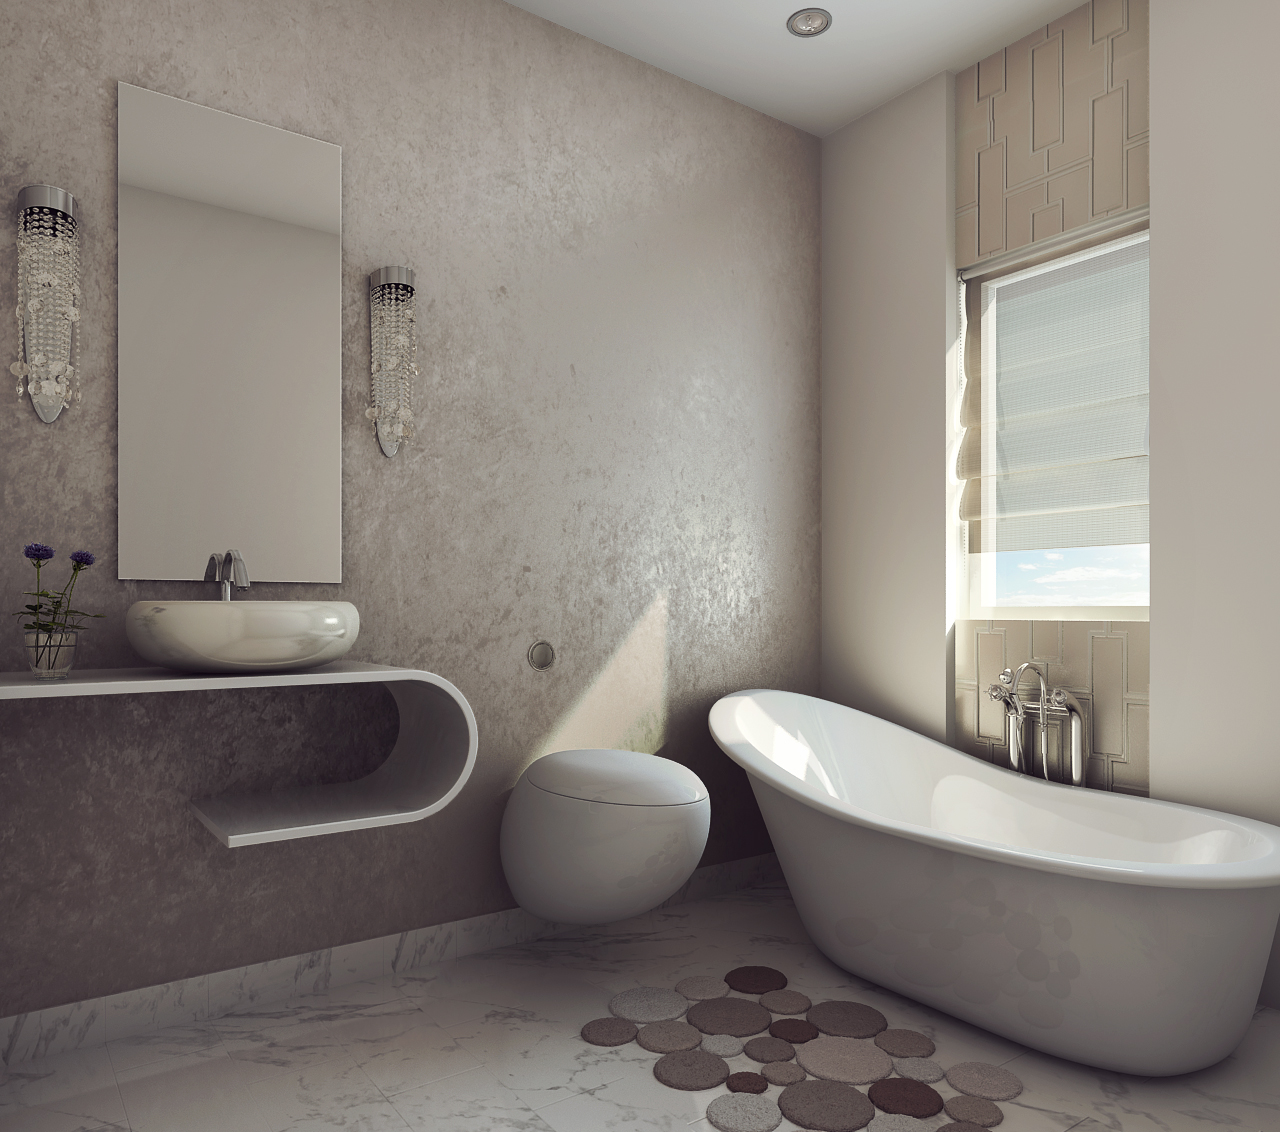 Modern earthy design bath room free 3d model max for Bathroom design 3d